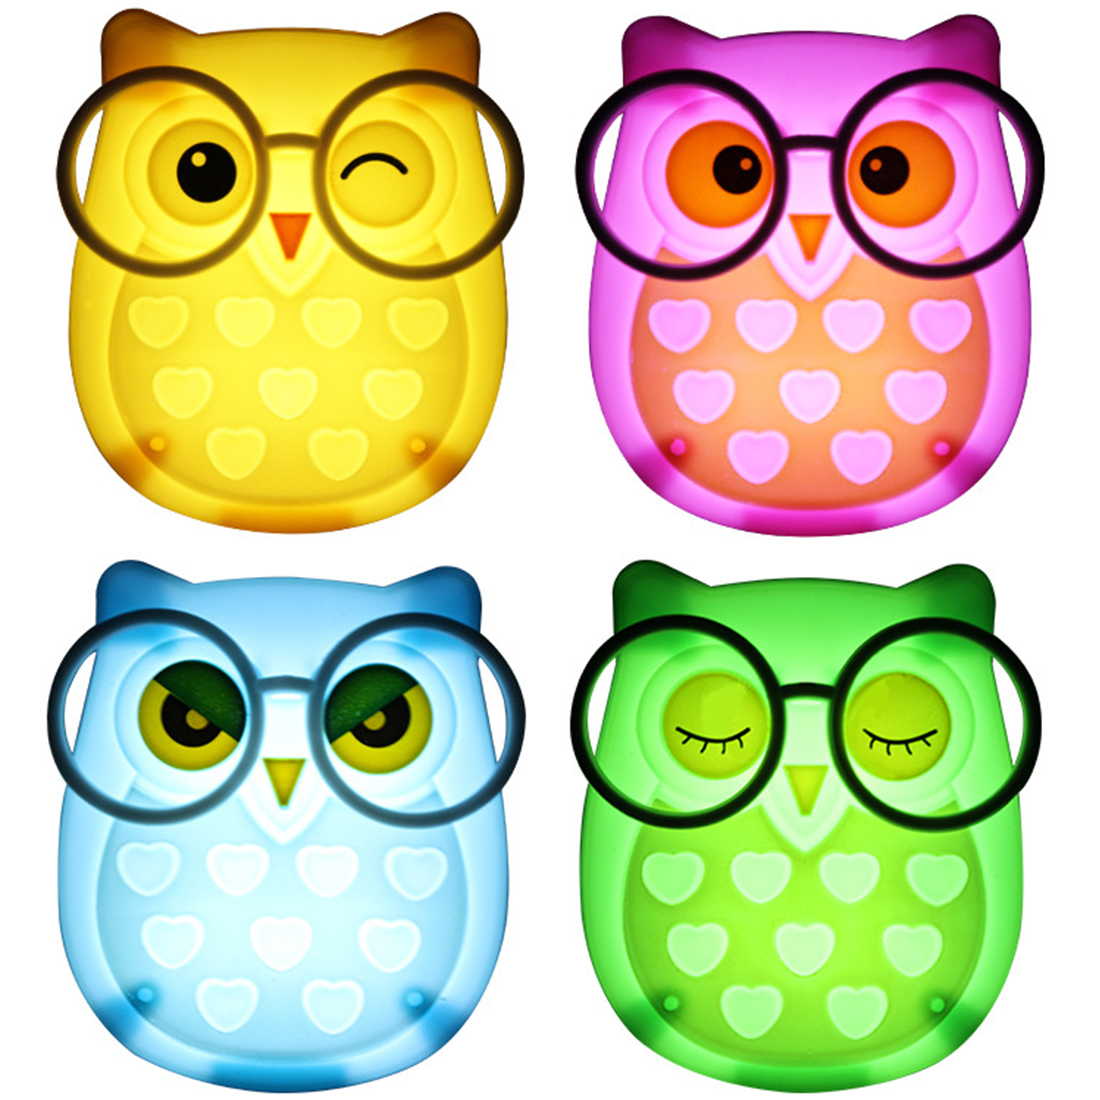 Owl Strawberry Rabbit Like Light Control Night Light Auto Sensor Light Control Lamp US Plug Child Kids Baby Lighting Room Lamp